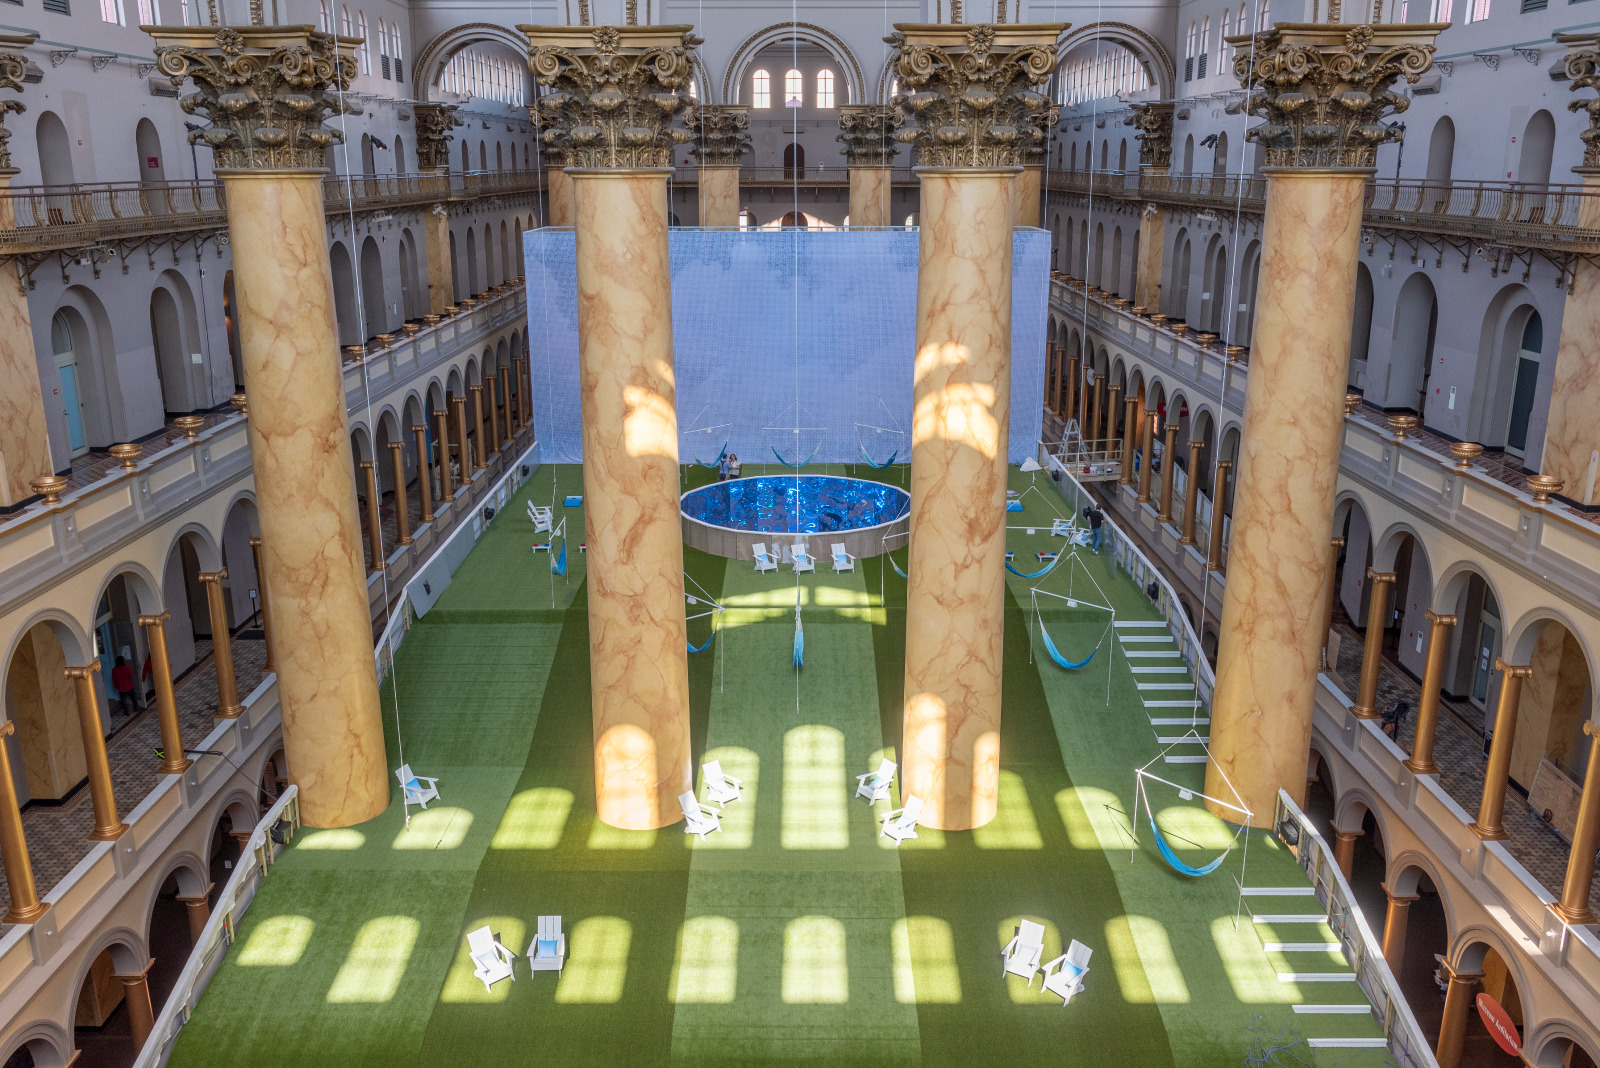 Video: Watch the National Building Museum's 'Lawn' exhibit come to life